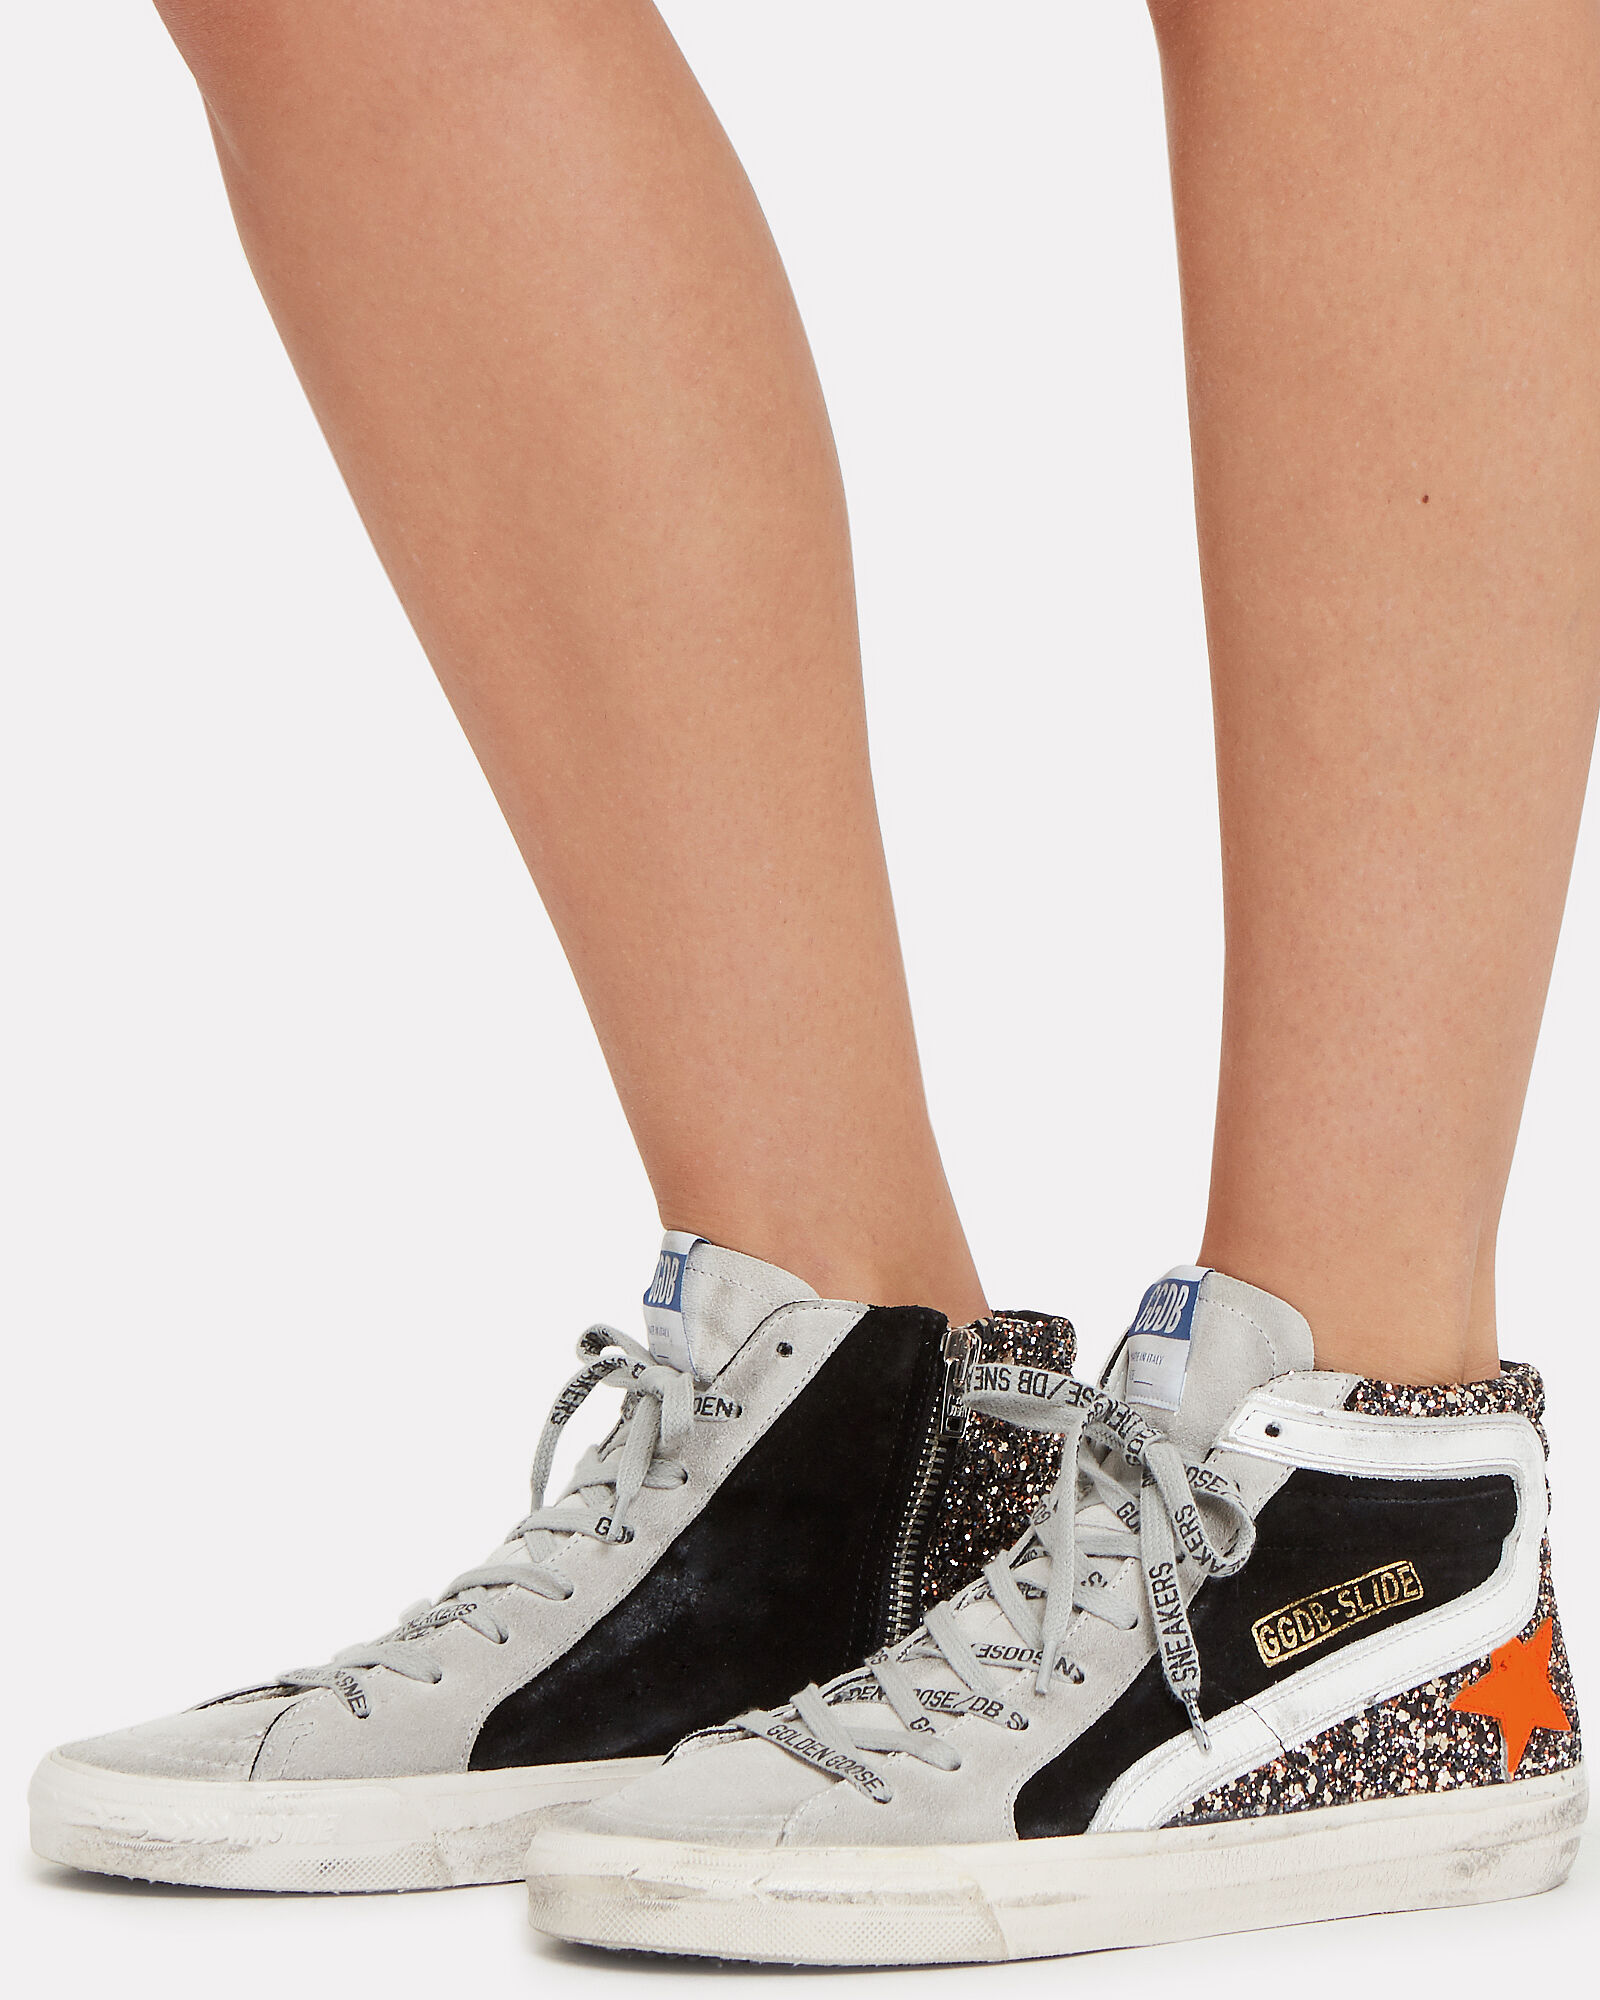 Slide Star High-Top Sneakers, GREY/BLACK, hi-res